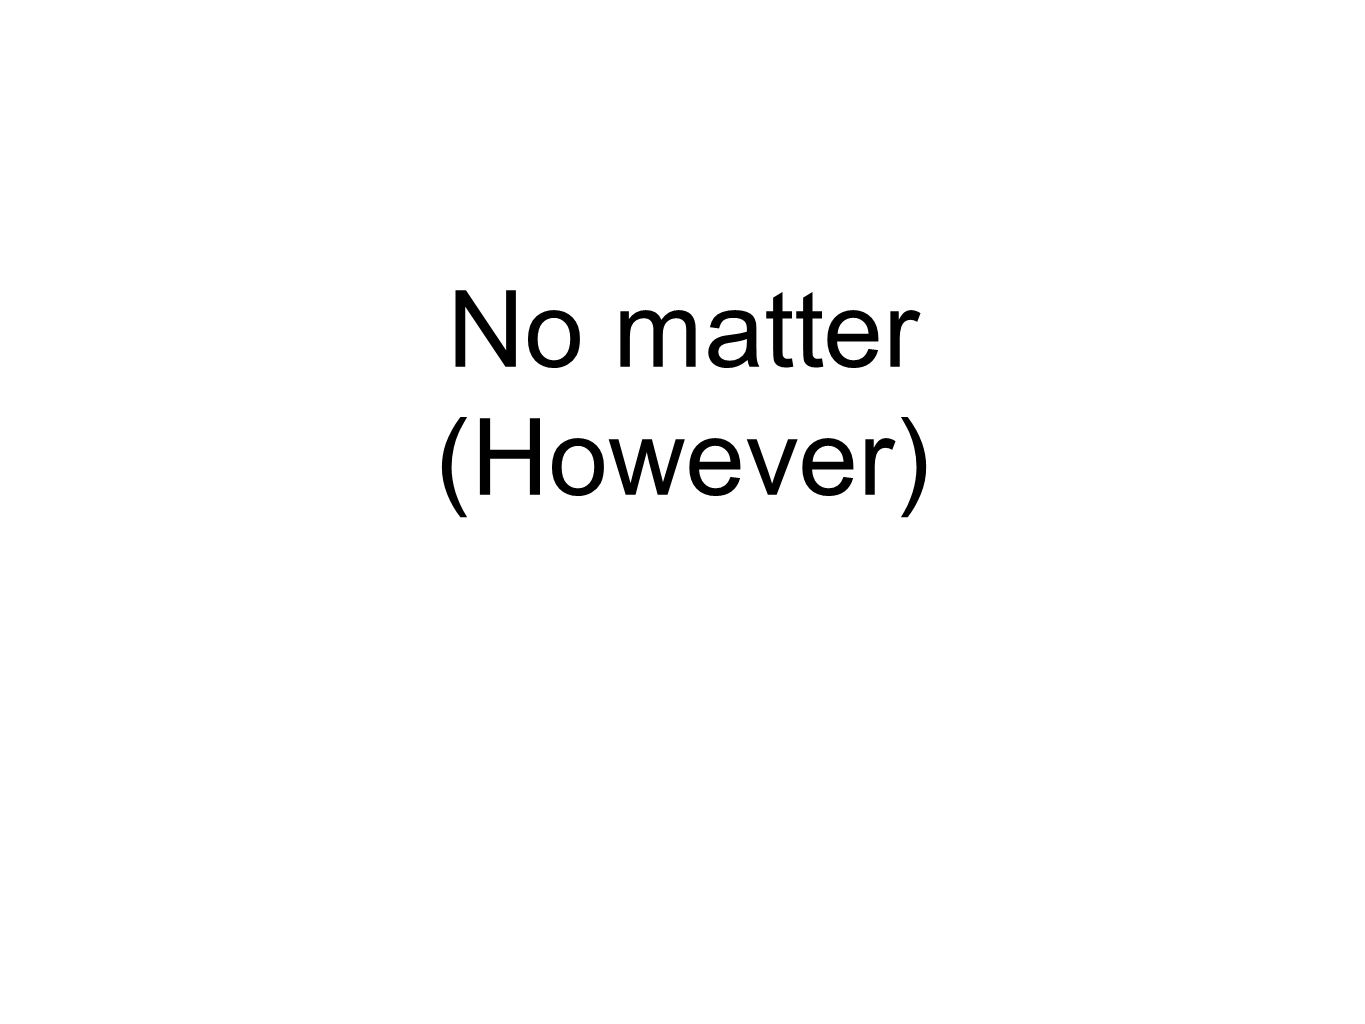 No matter (However)